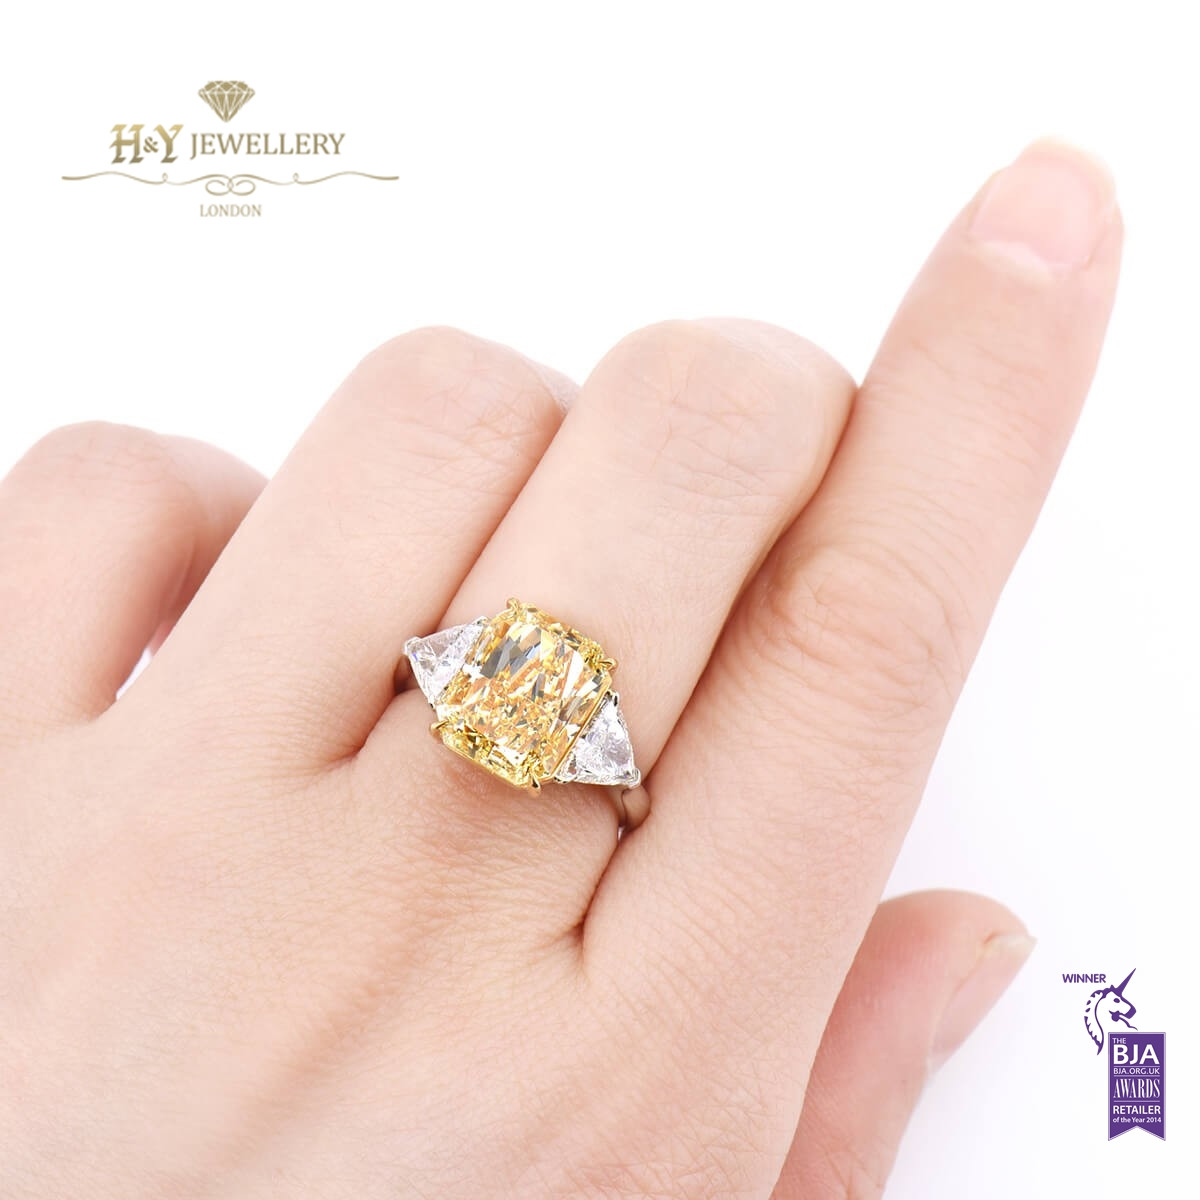 Fancy Yellow Diamond Ring - 6.69 ct